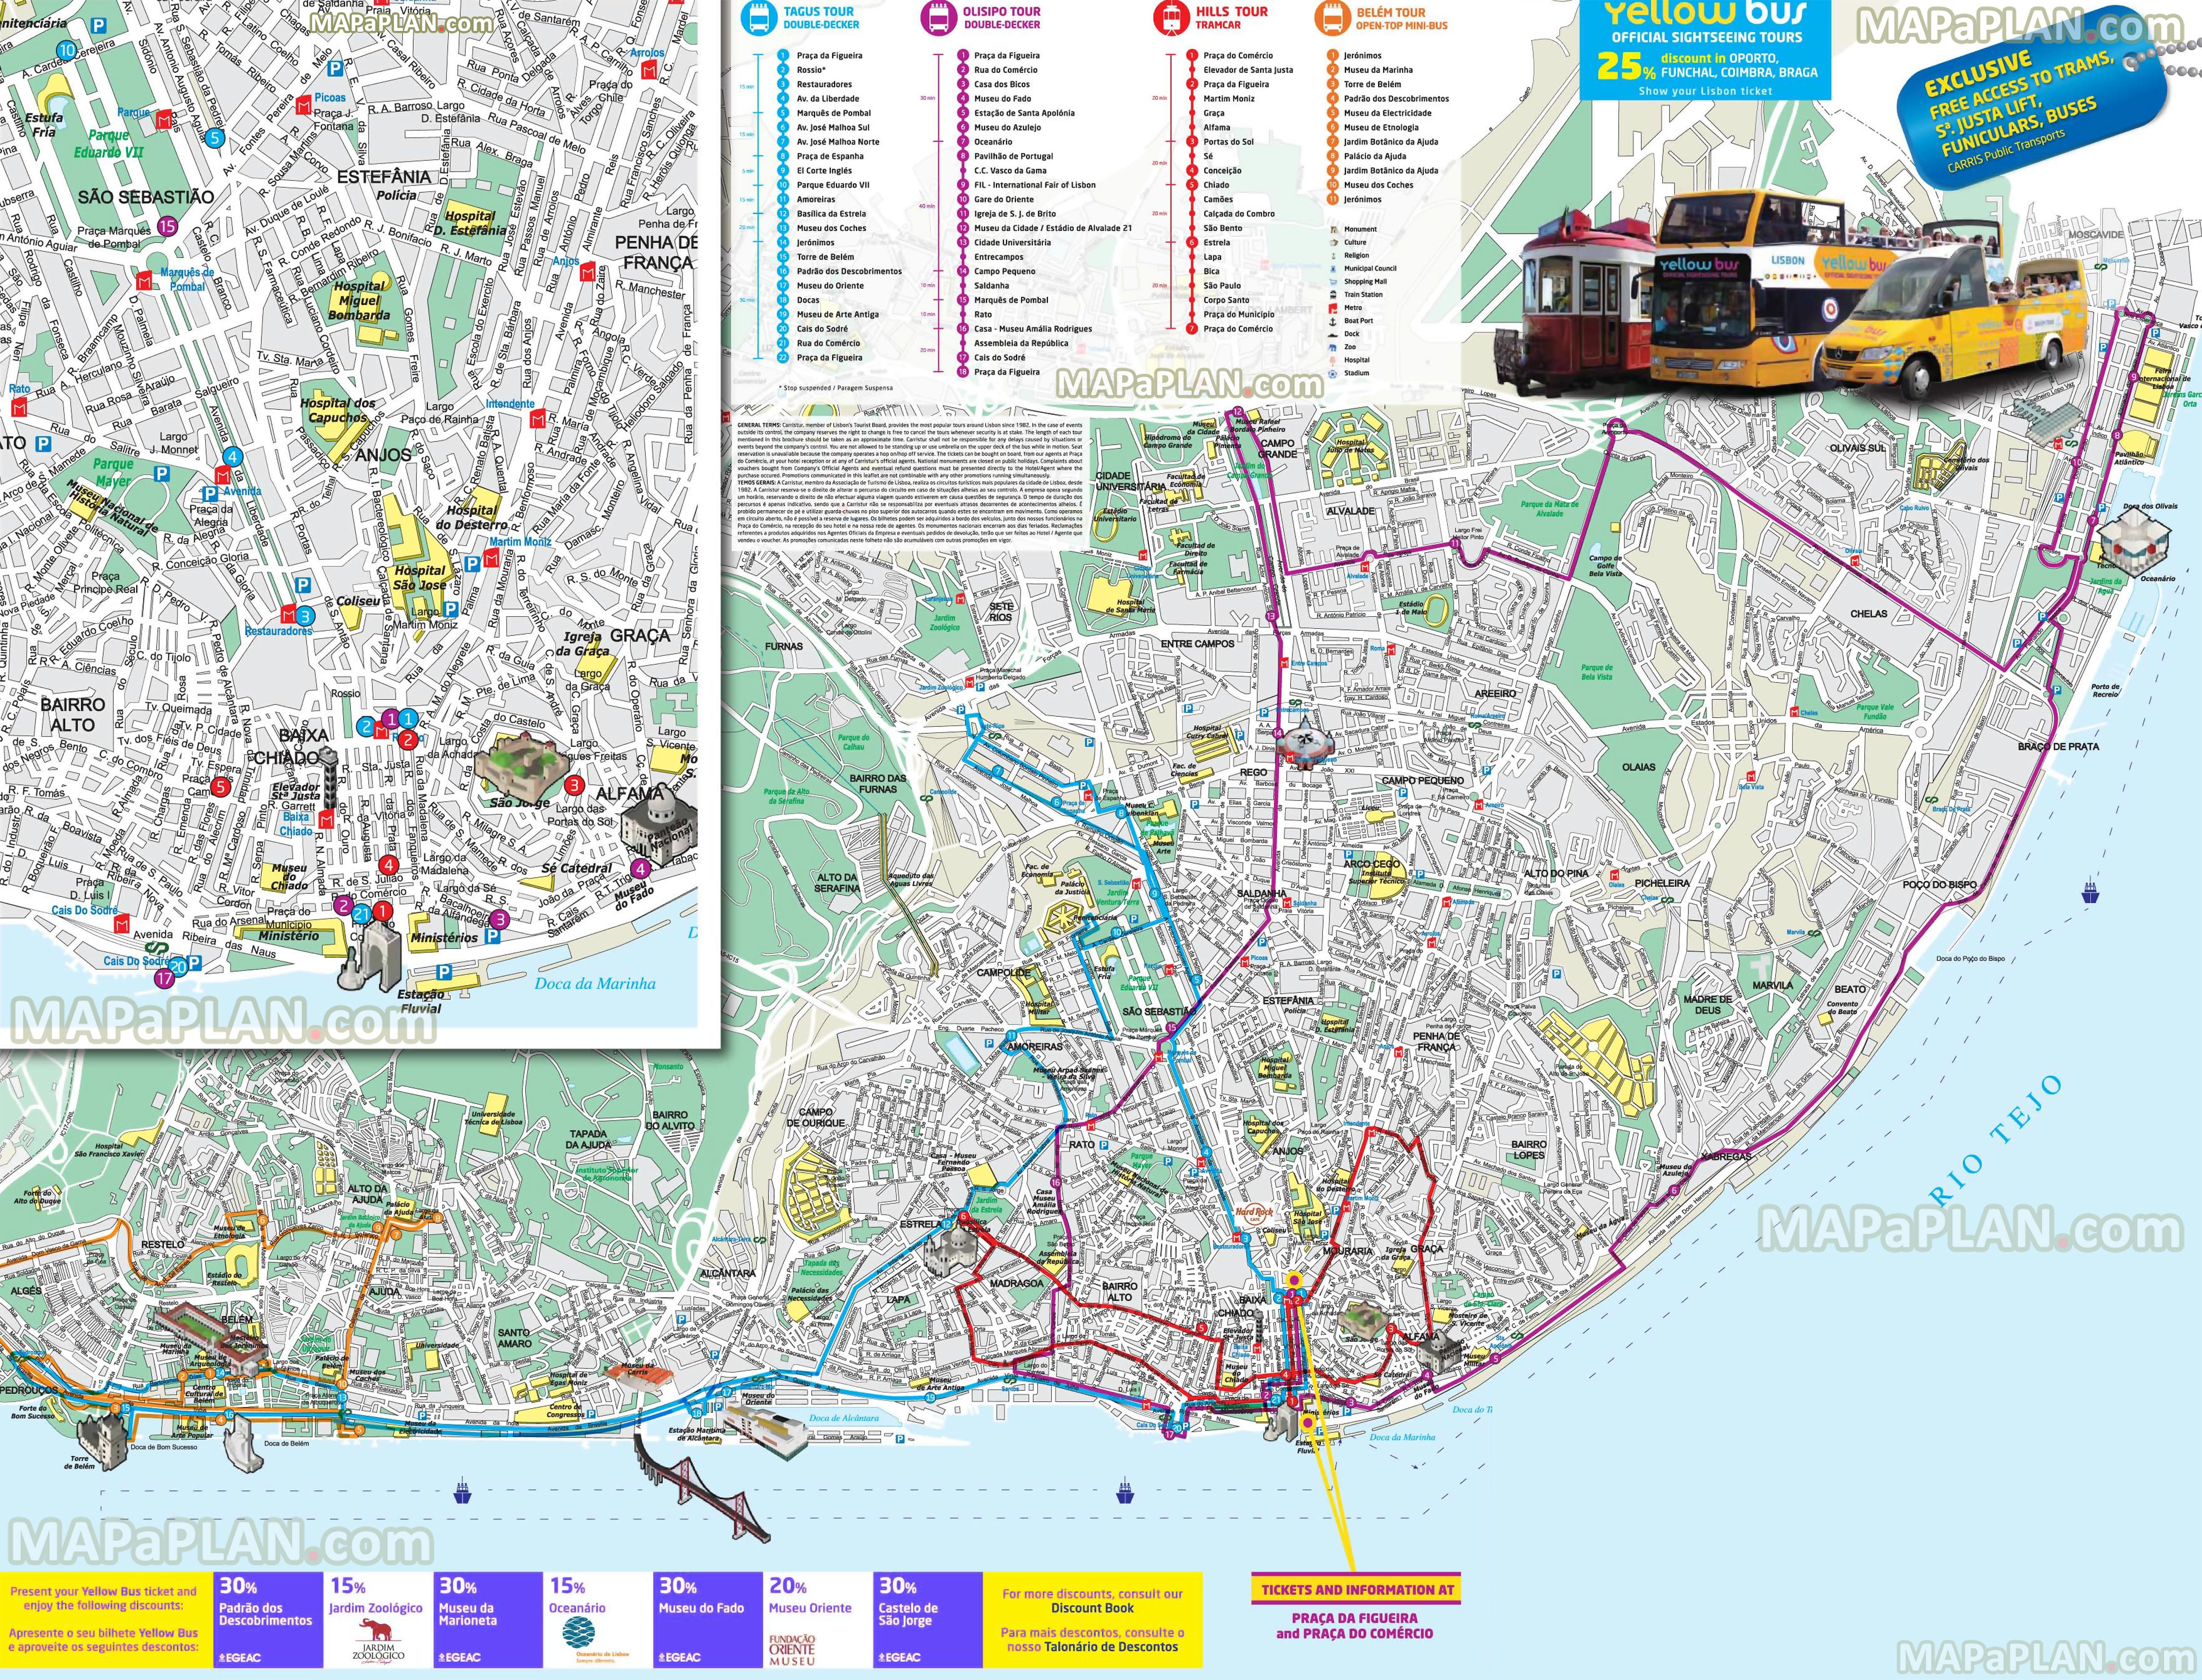 Nyc Street Parking Map Lisbon Maps Top Tourist Attractions Free